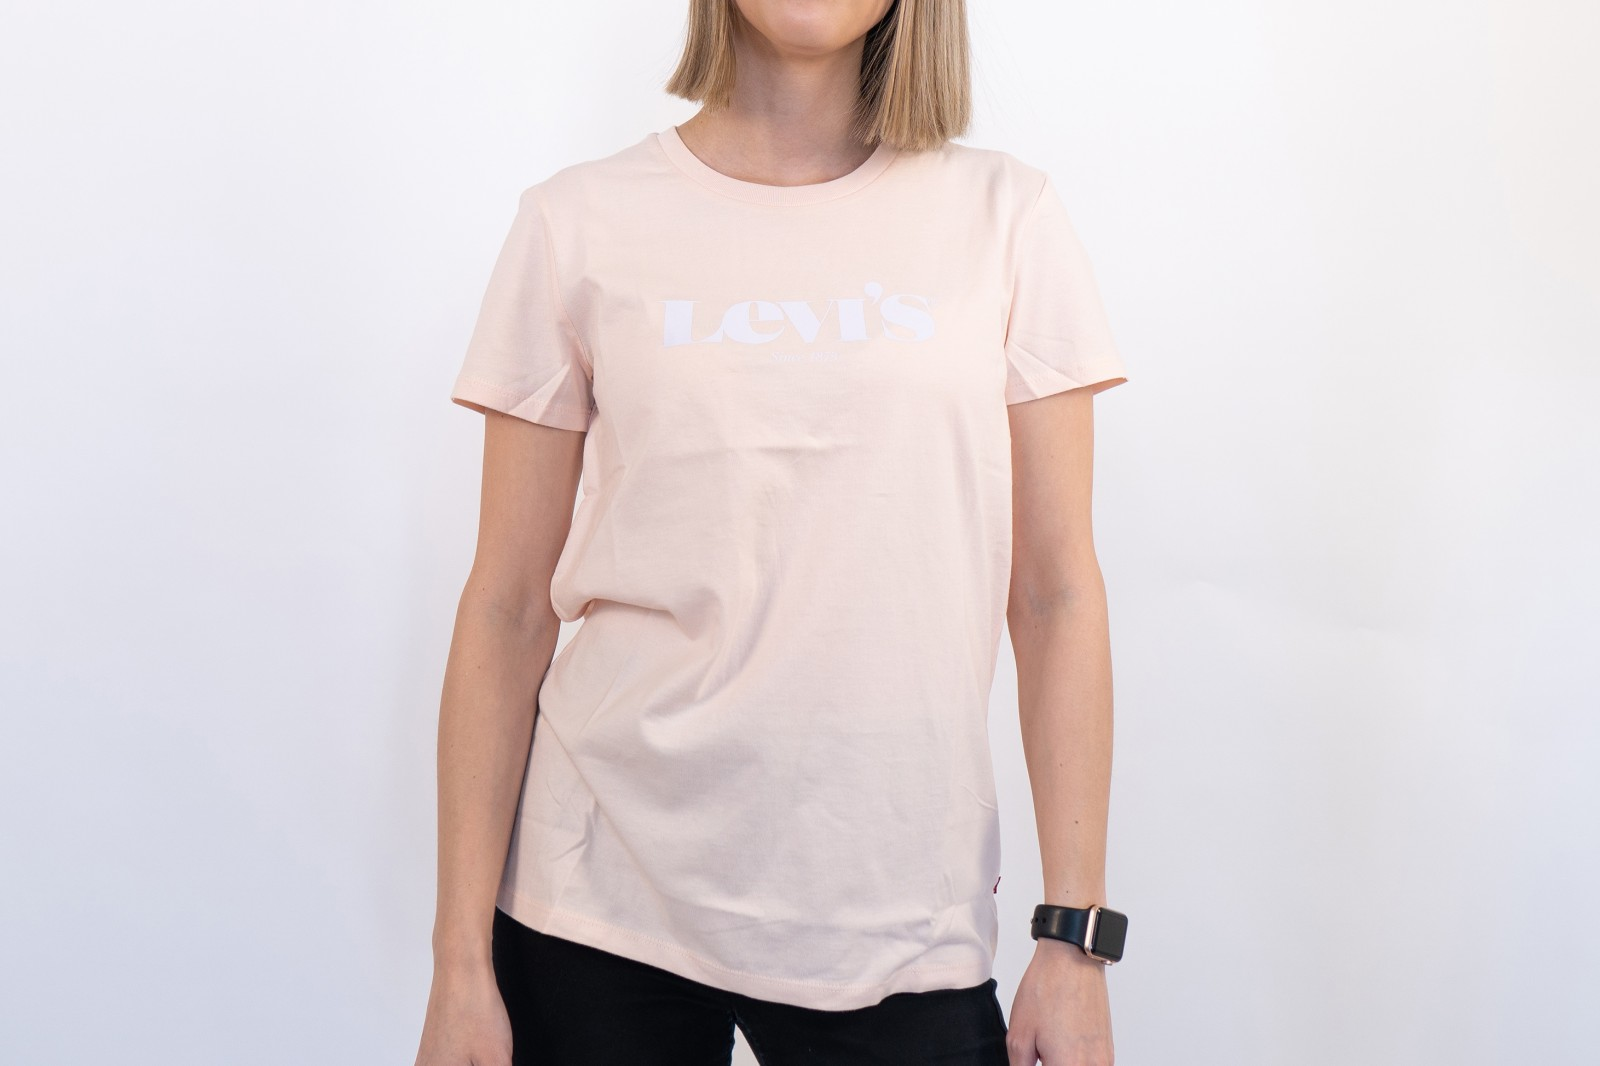 The perfect tee NEW LOGO SCALLOP SHELL